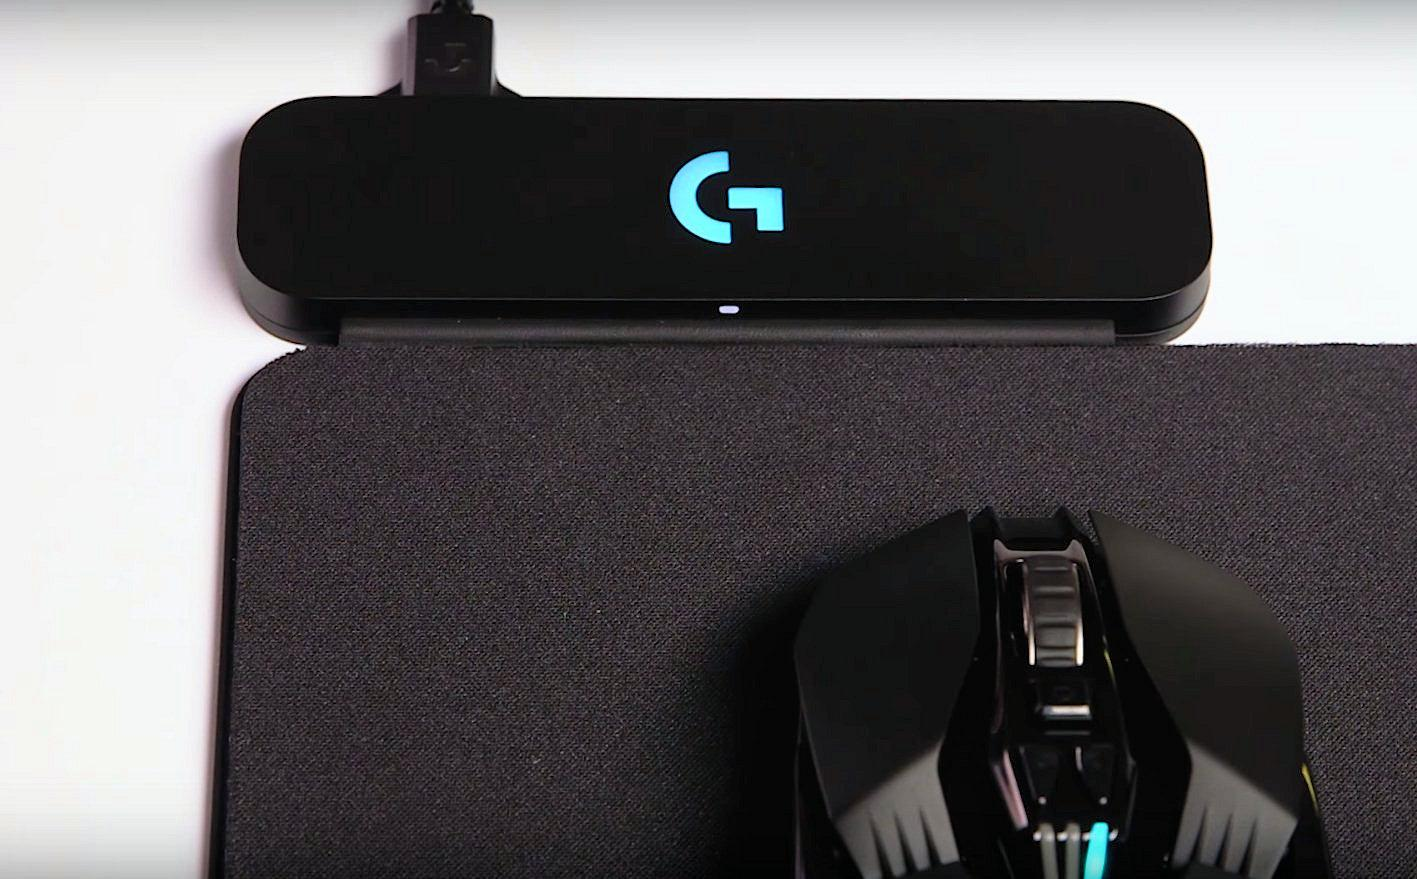 Logitech has opted to make use of electromagnetic resonance, as opposed to induction charging, to provide power to a static or moving mouse on the Powerplay pad's 275 x 320 mm surface